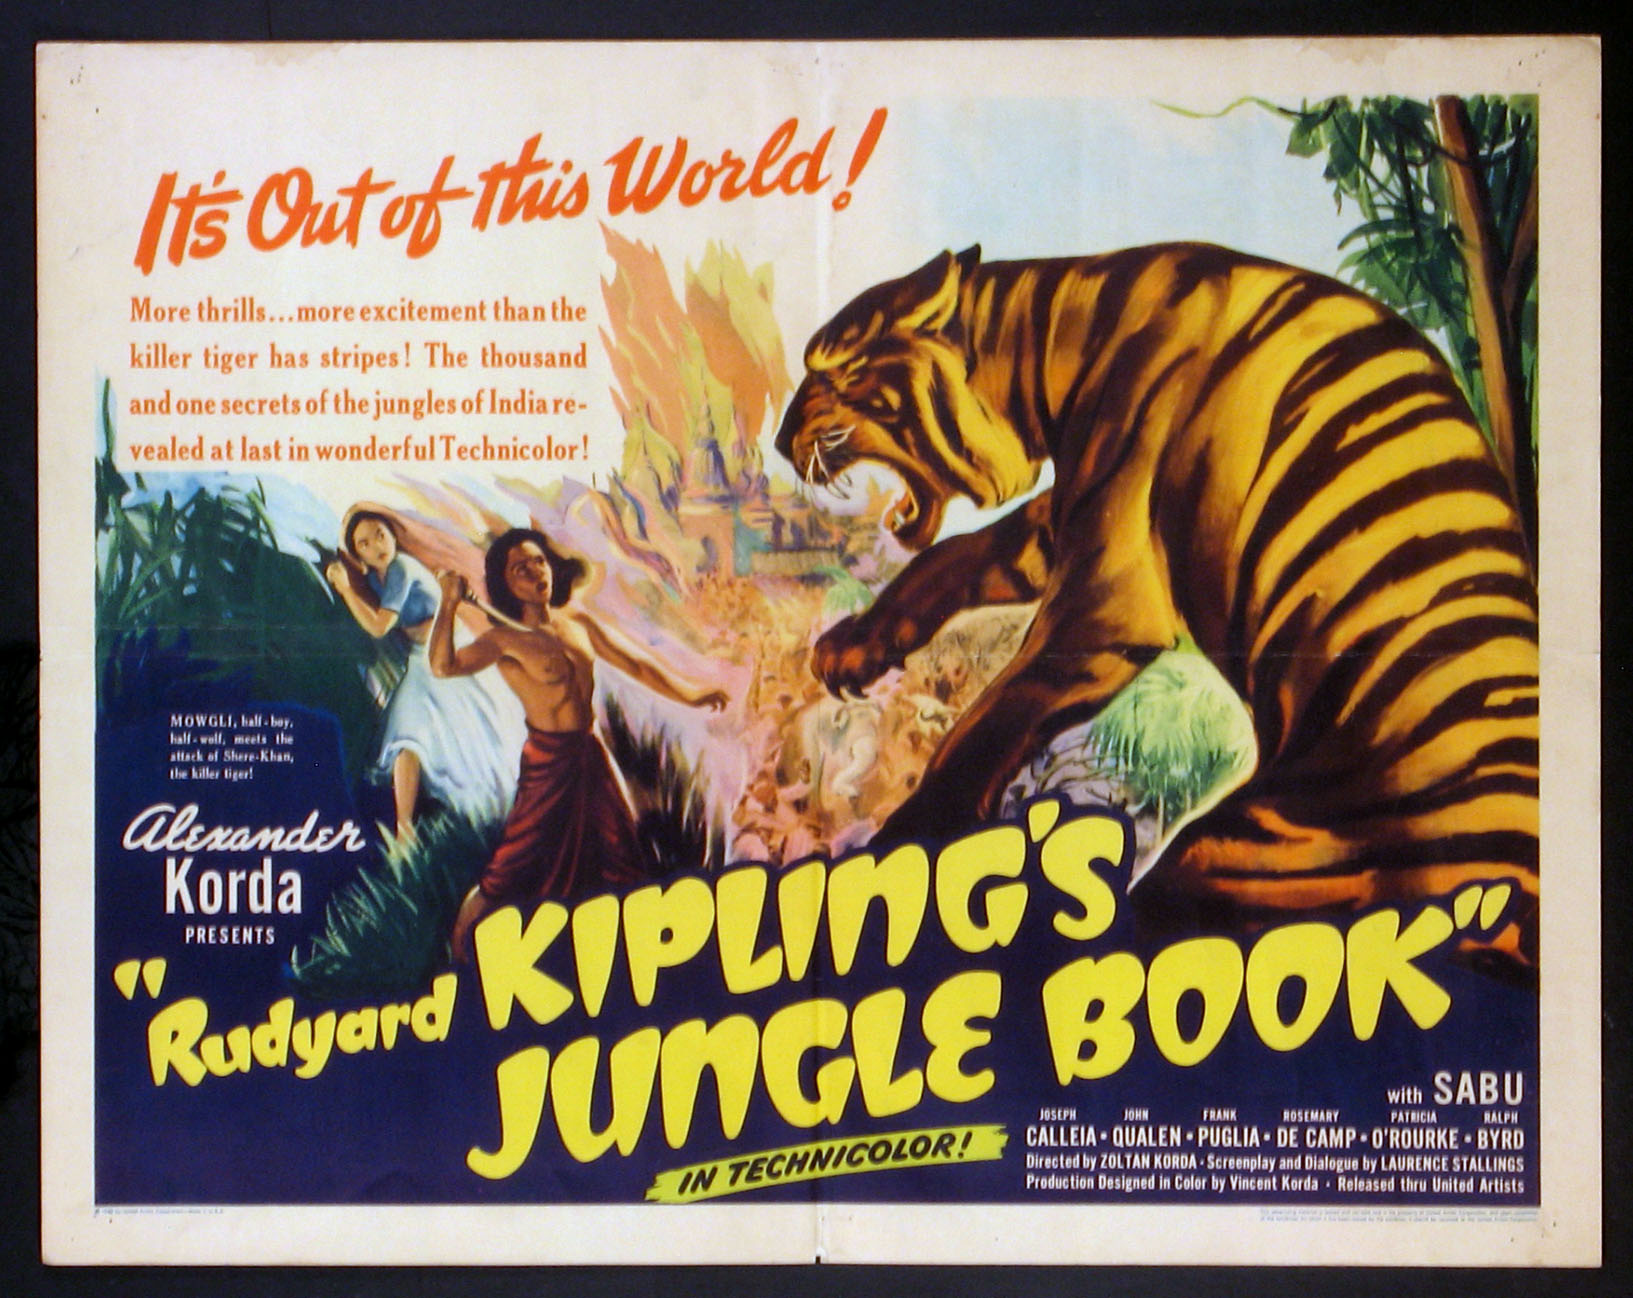 JUNGLE BOOK (Rudyard Kipling's) @ FilmPosters.com